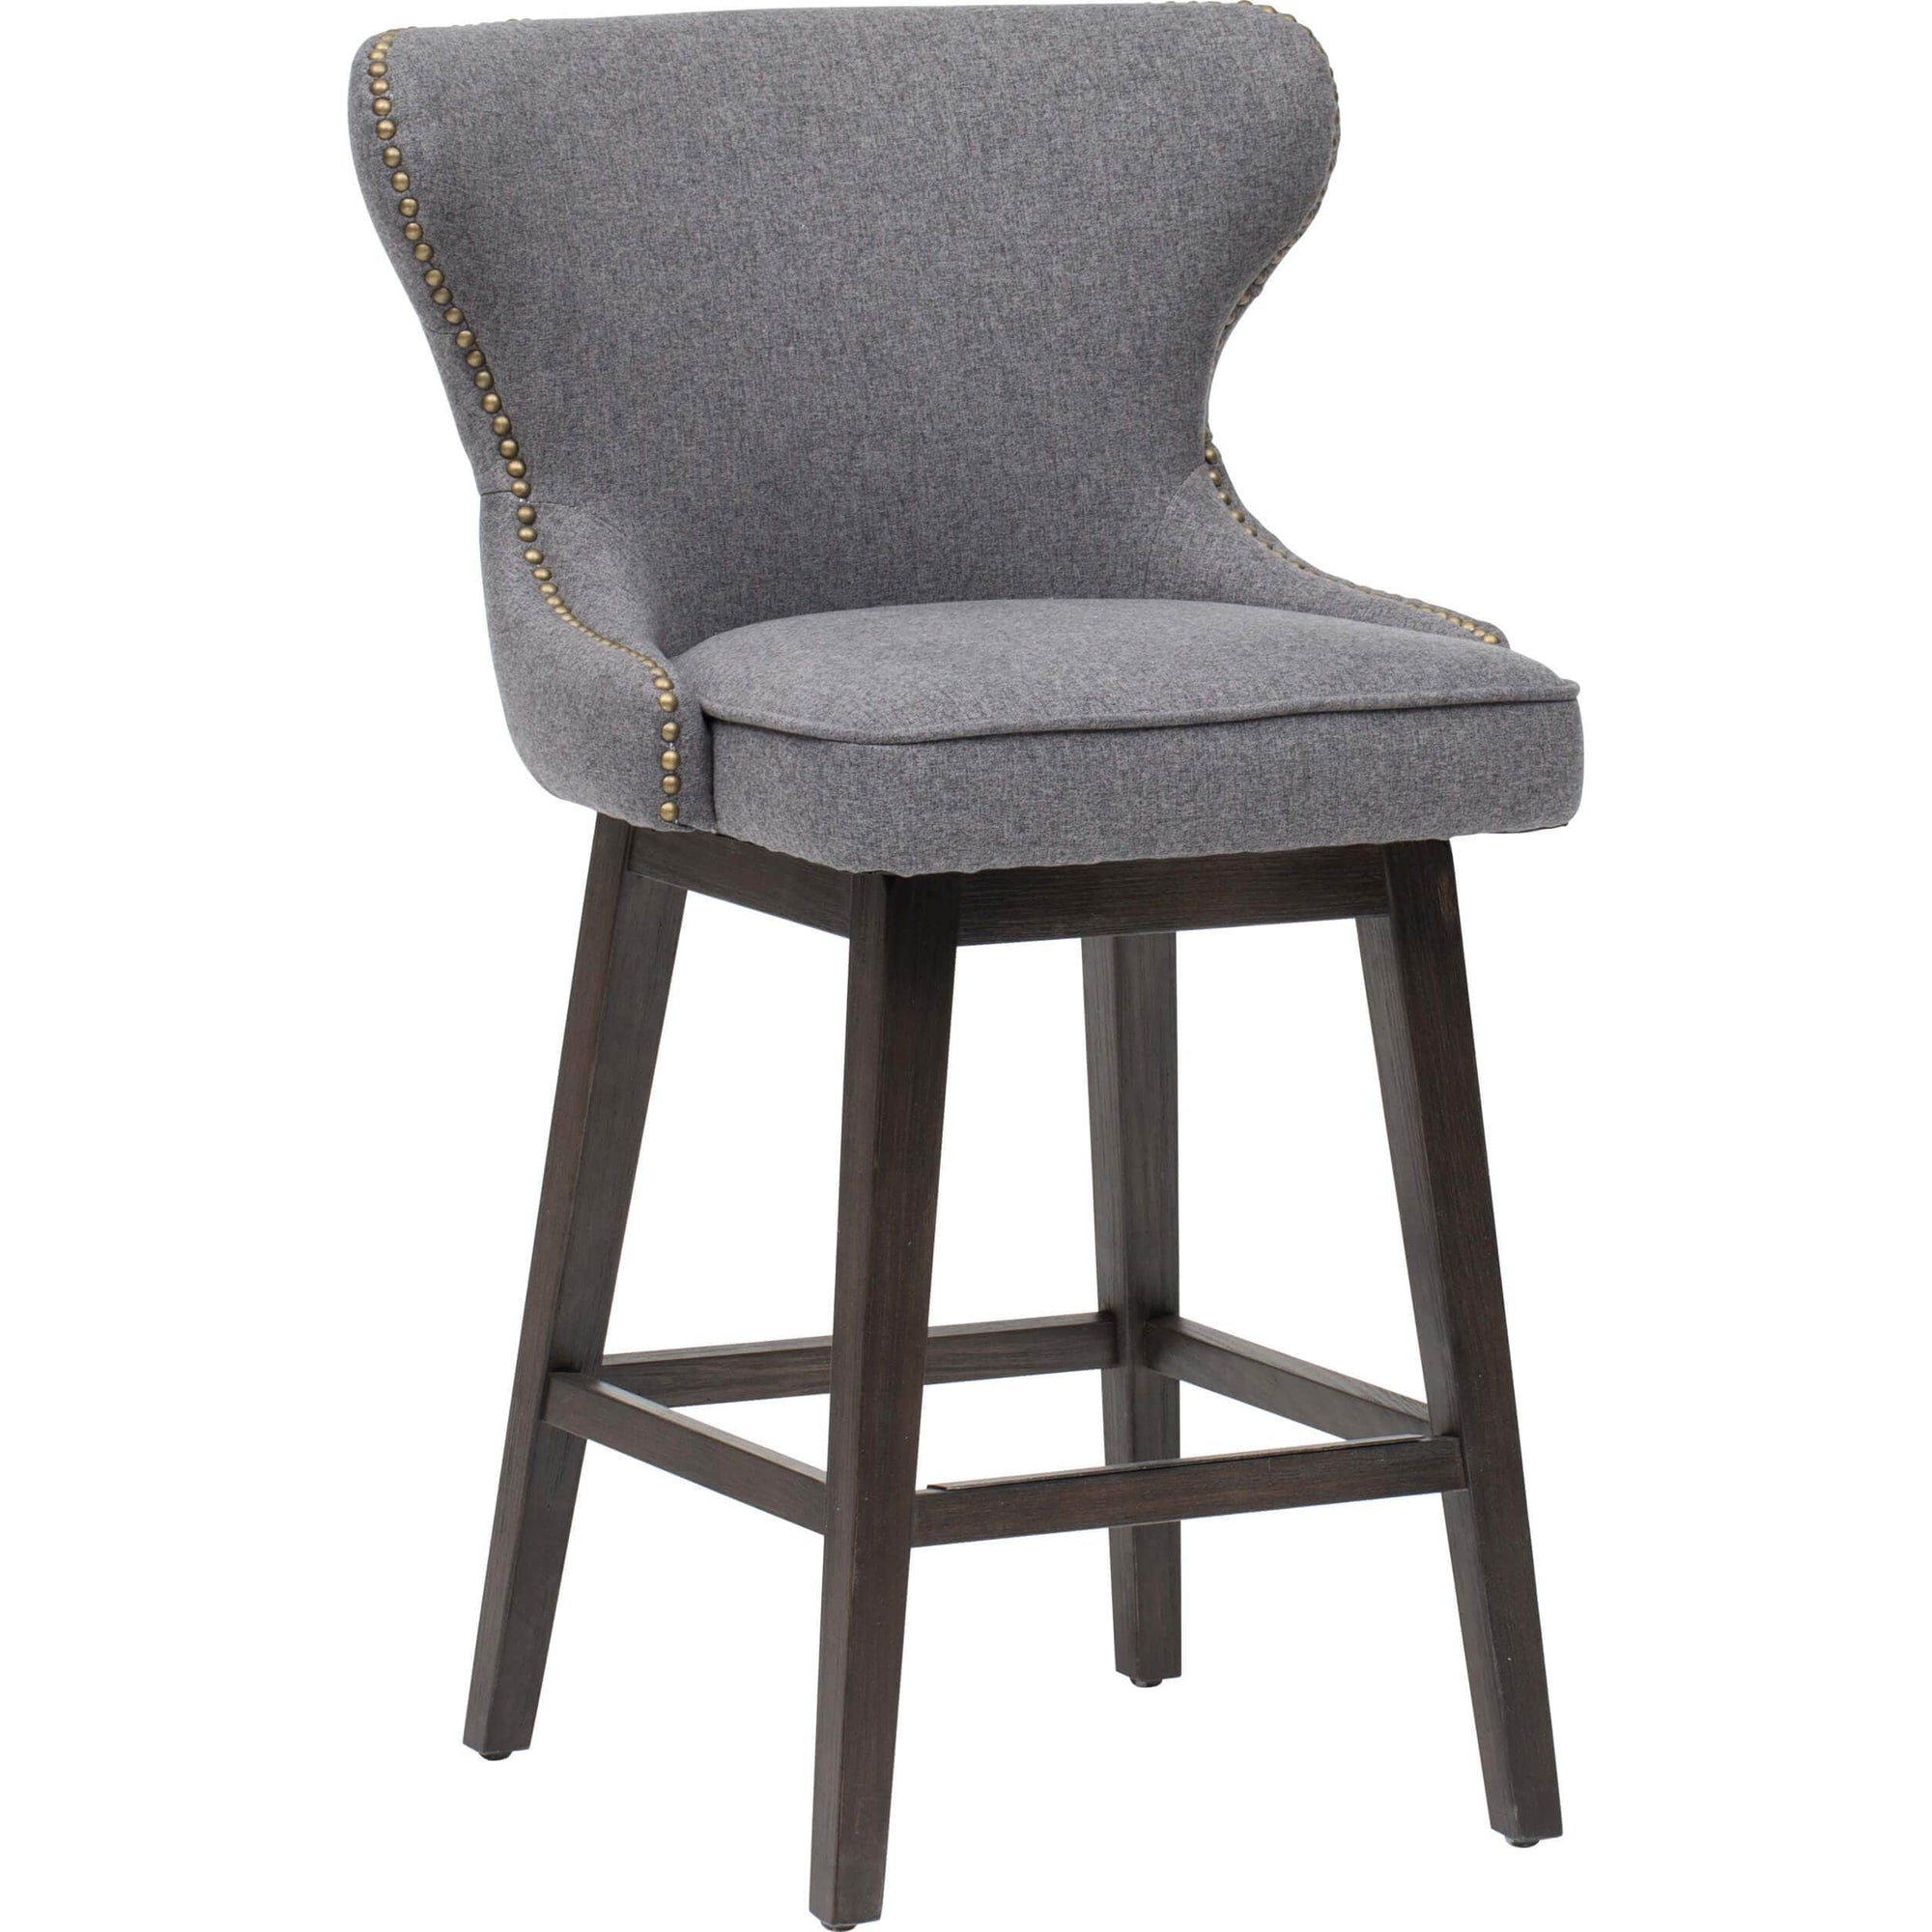 Outstanding Ariana Swivel Counter Stool Dark Grey High Fashion Home Andrewgaddart Wooden Chair Designs For Living Room Andrewgaddartcom